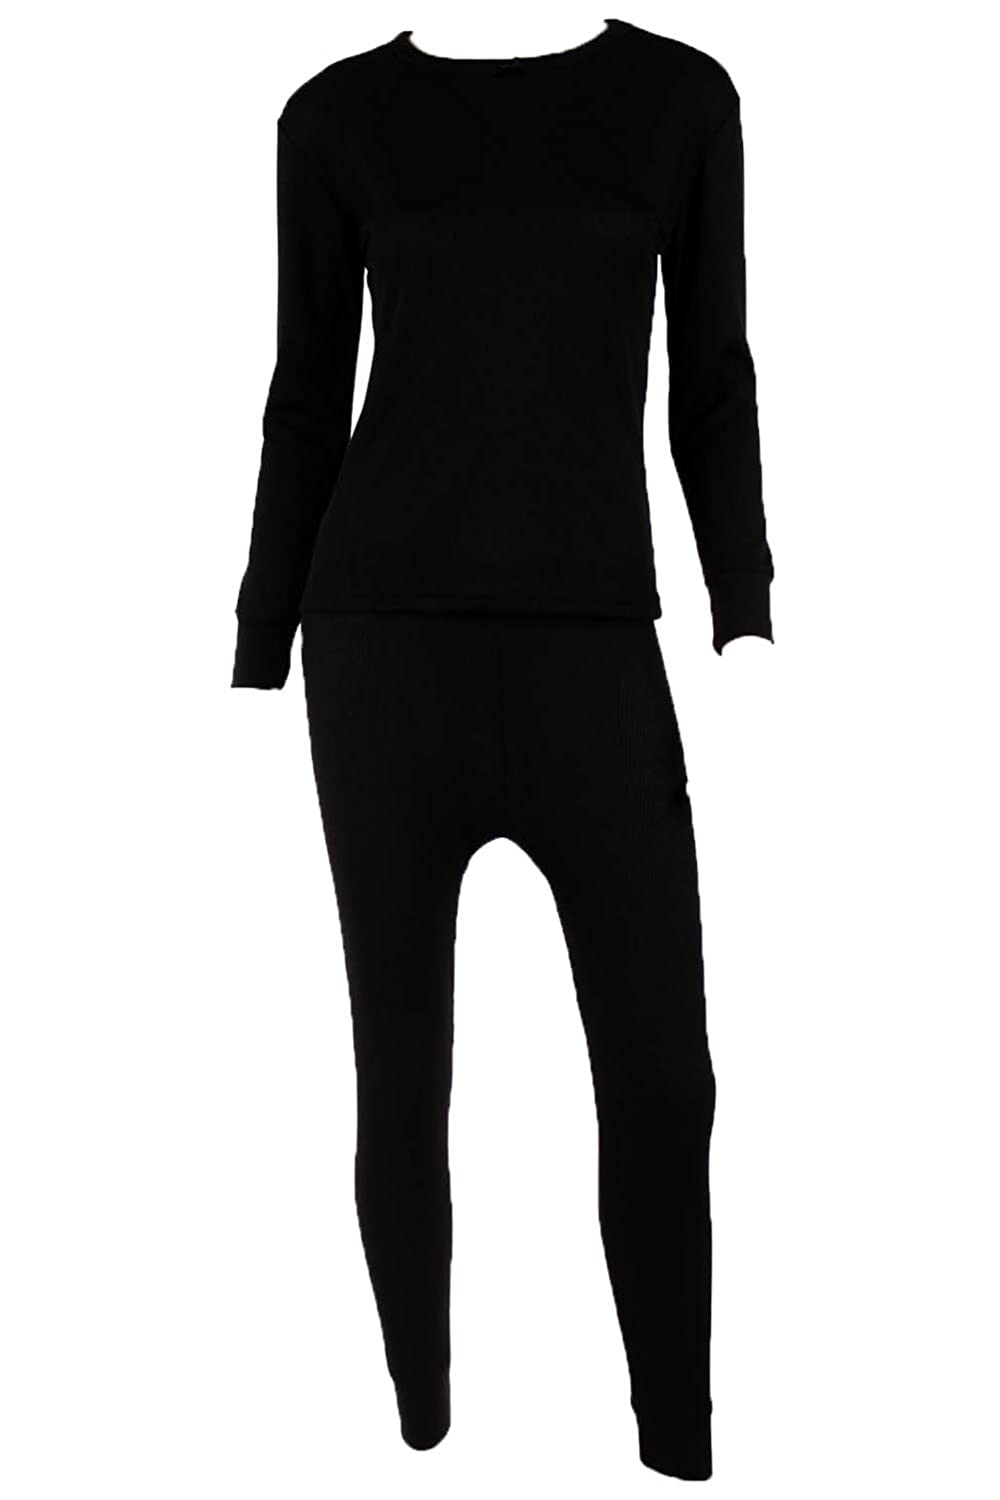 WUHOU Womens 100/% Cotton Thermal Underwear Two Piece Long Johns Set WOMCOTHERMALSIZCOL